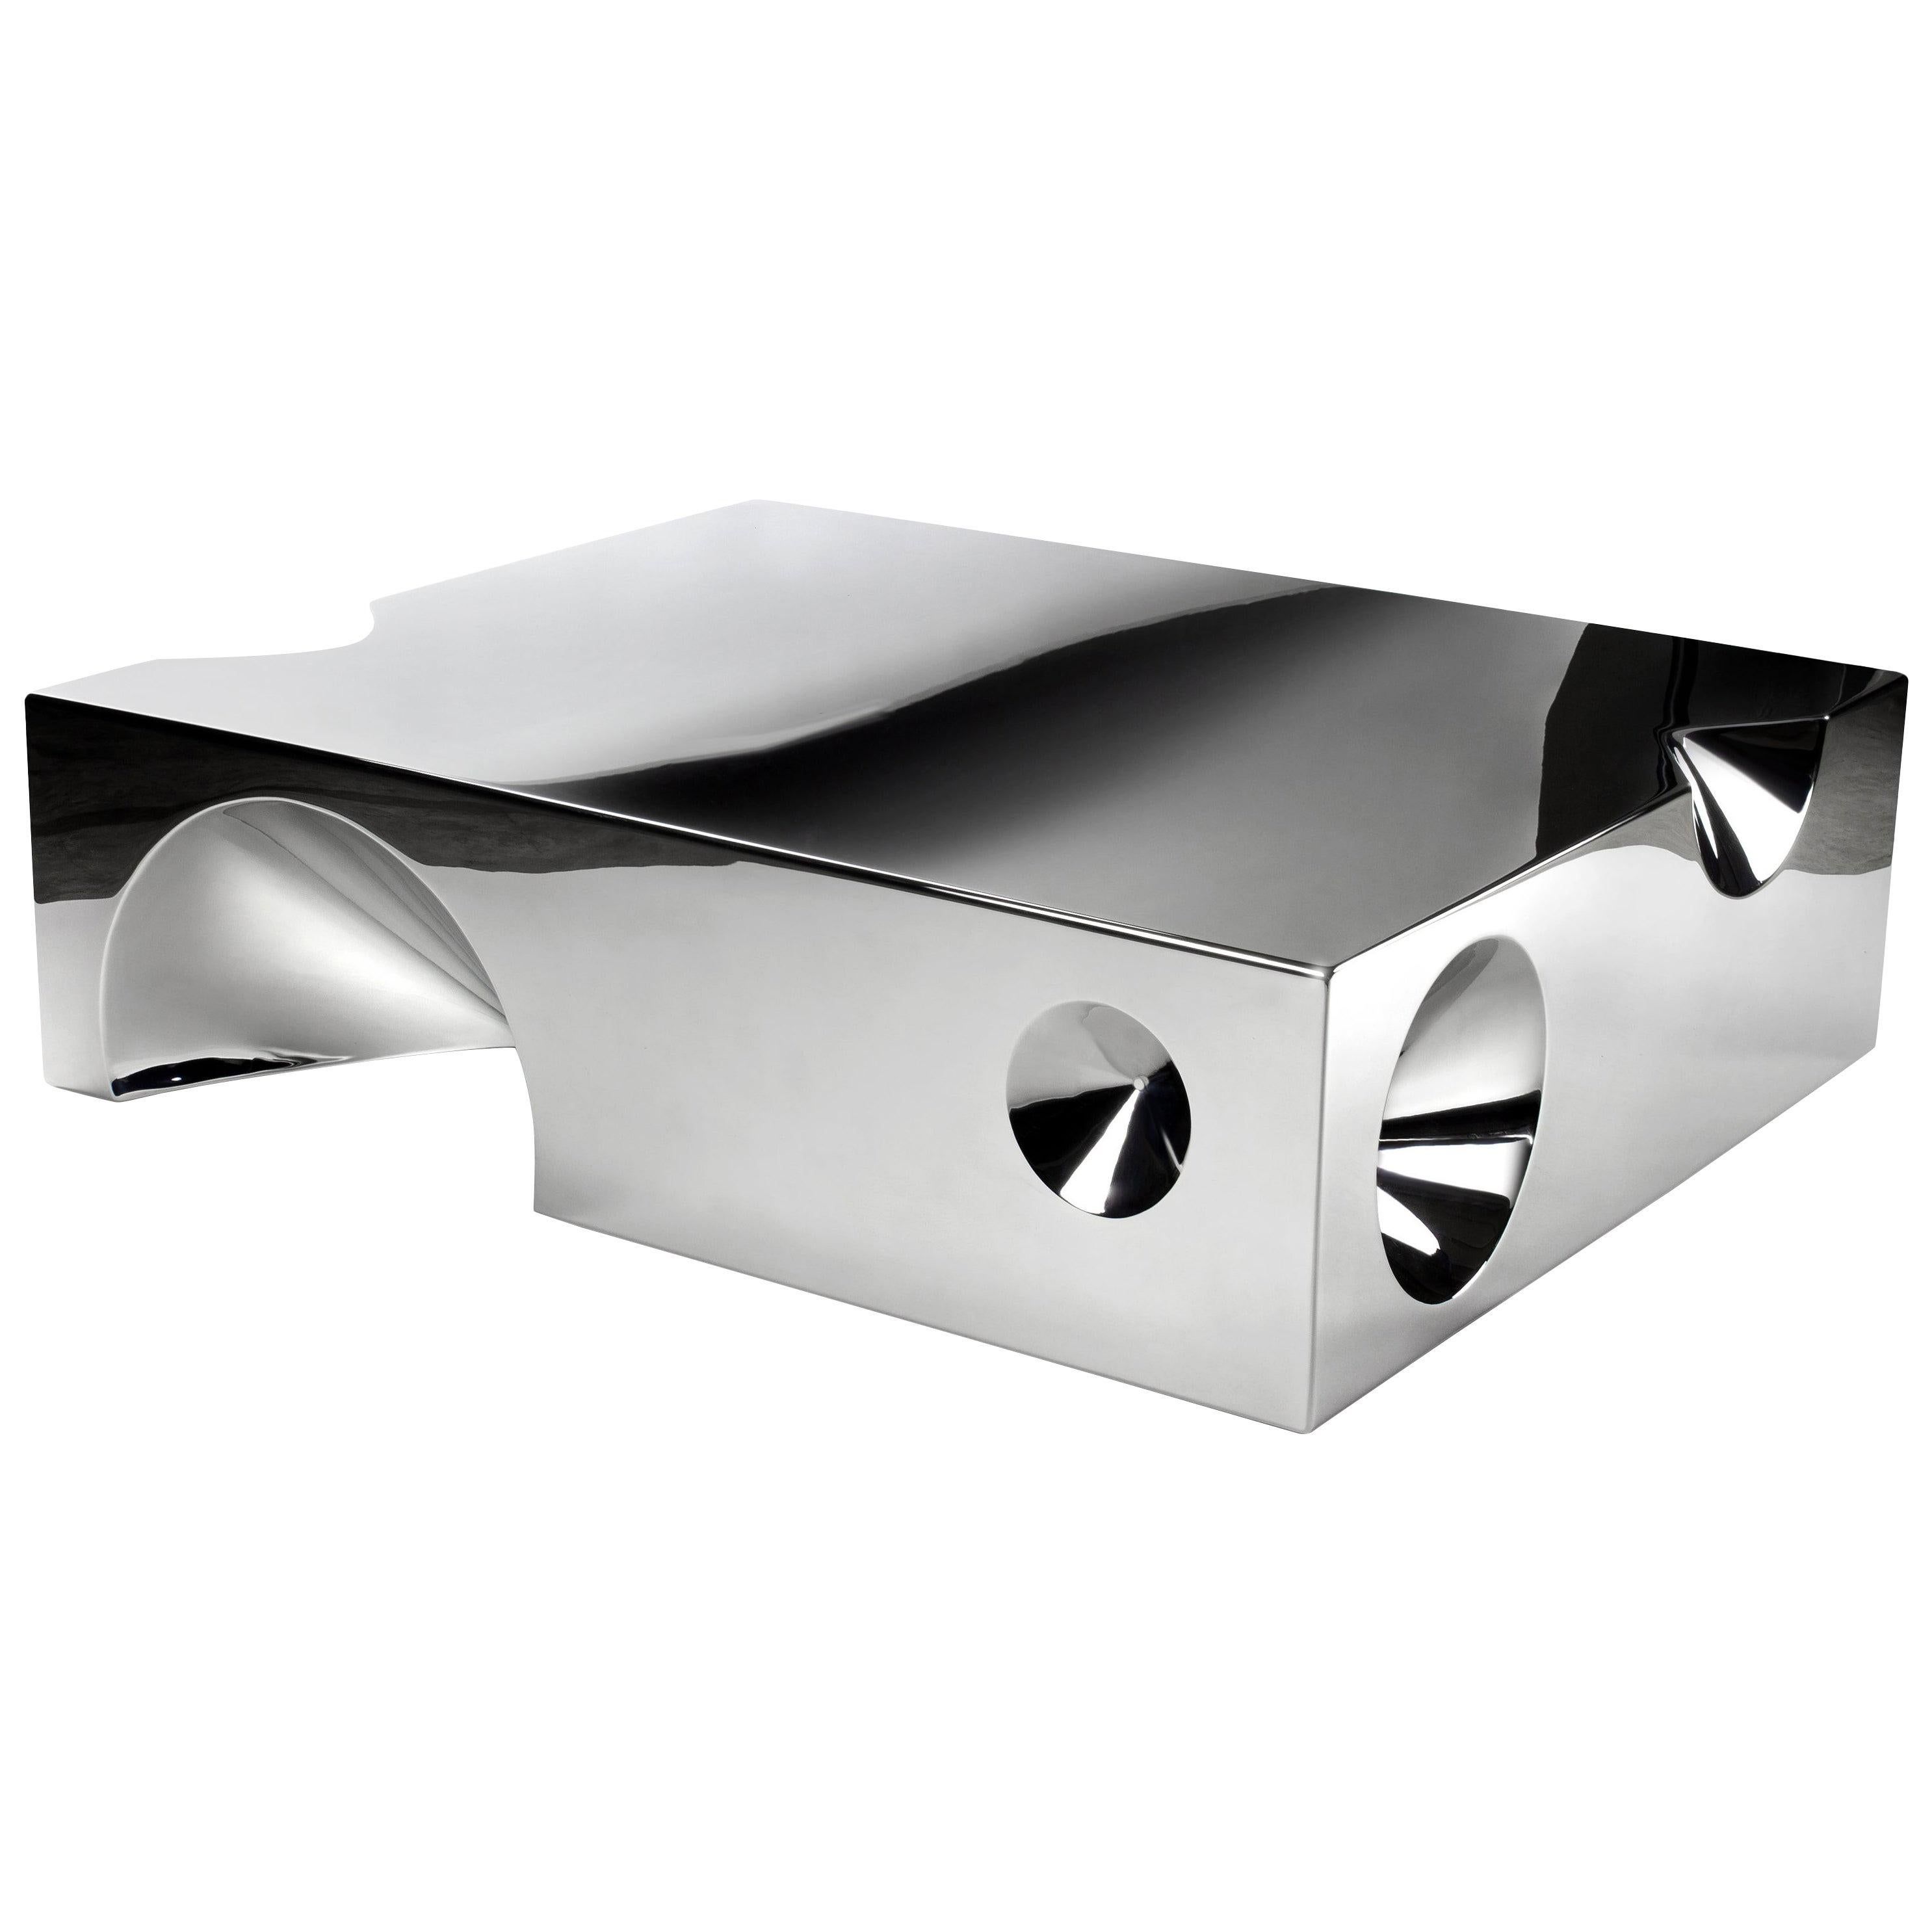 Coffee Table Sculpture Steel Italian Limited Edition Contemporary Design